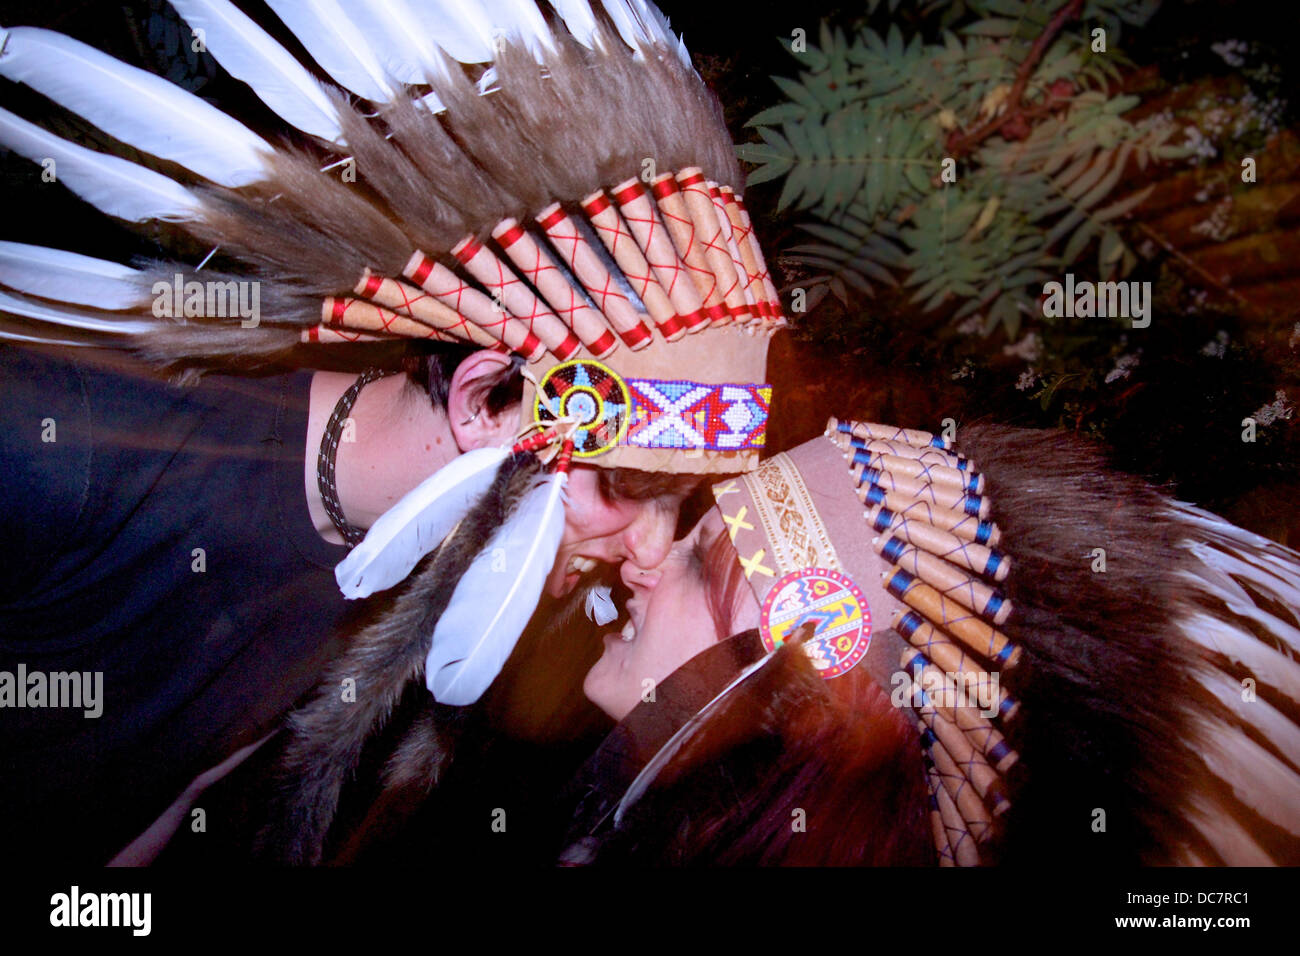 Native american head dress - Stock Image